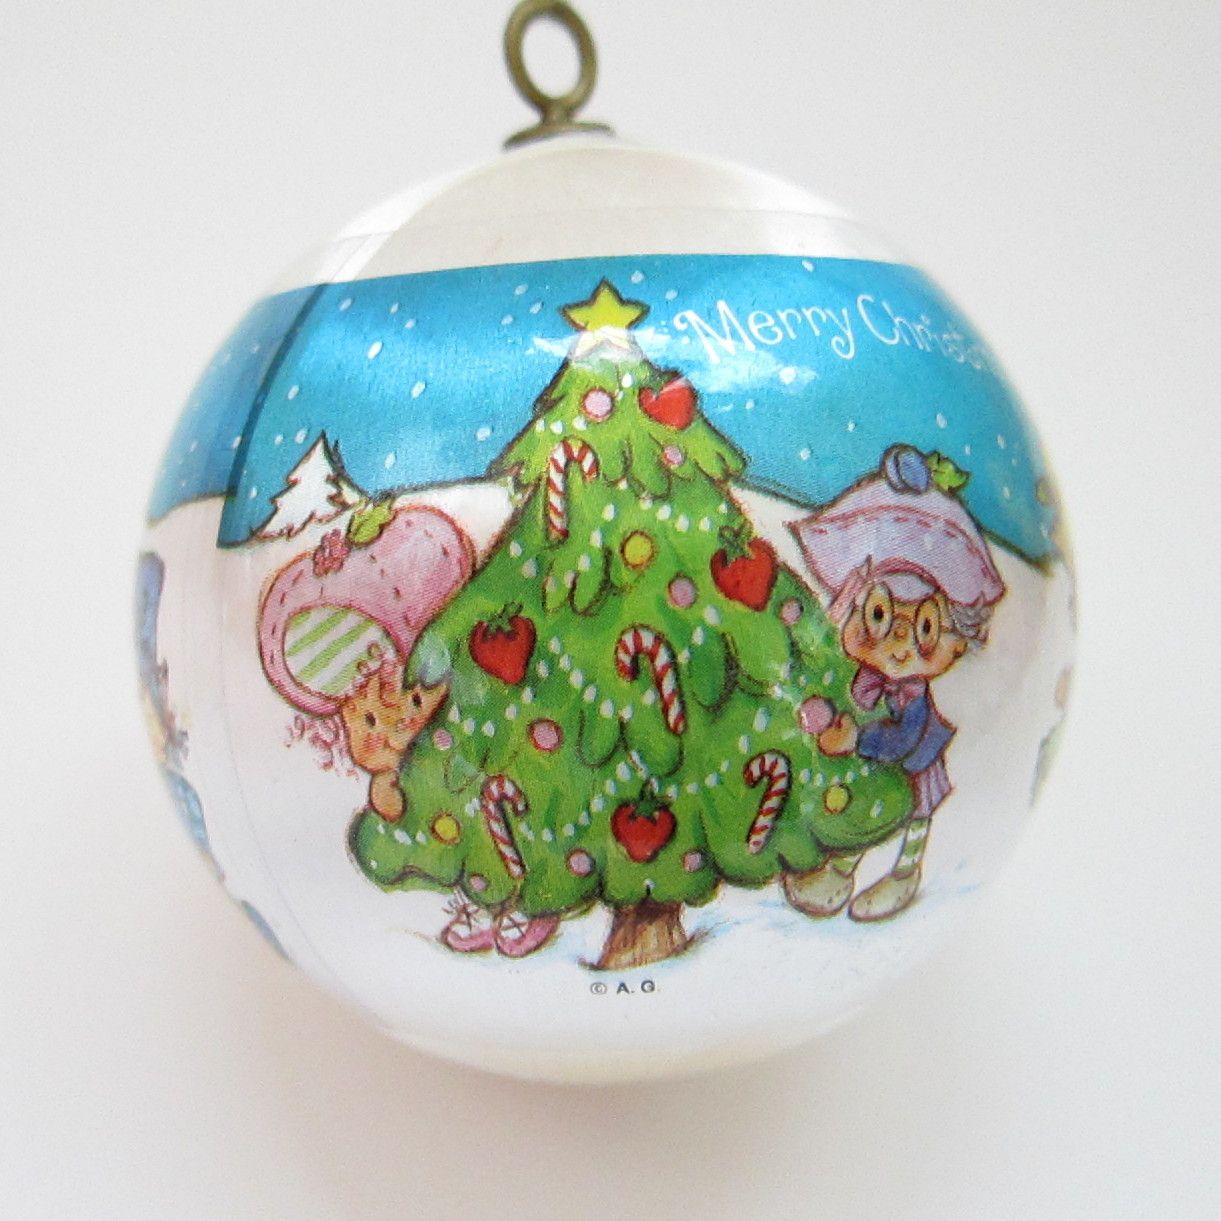 Strawberry christmas ornaments - This Vintage Strawberry Shortcake Christmas Tree Ornament Is A White Silk Ball With A Plastic Sleeve